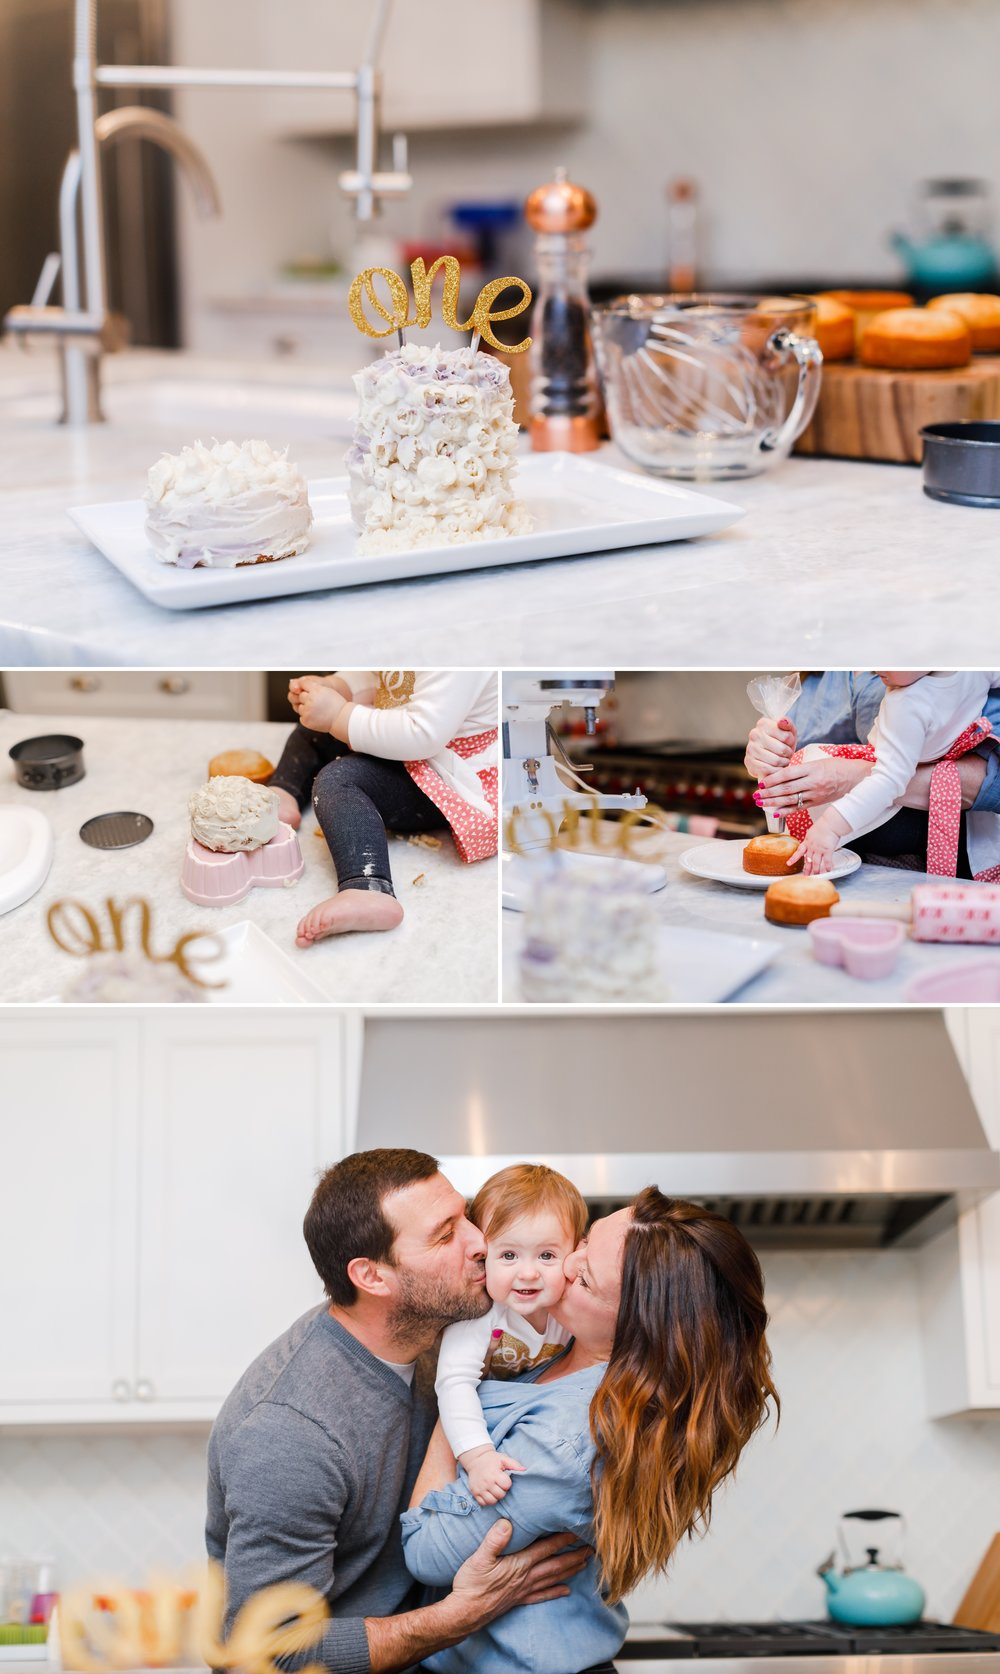 chicago-baby-milestone-family-lifestyle-photographer-jenny-grimm-photography_0002.jpg